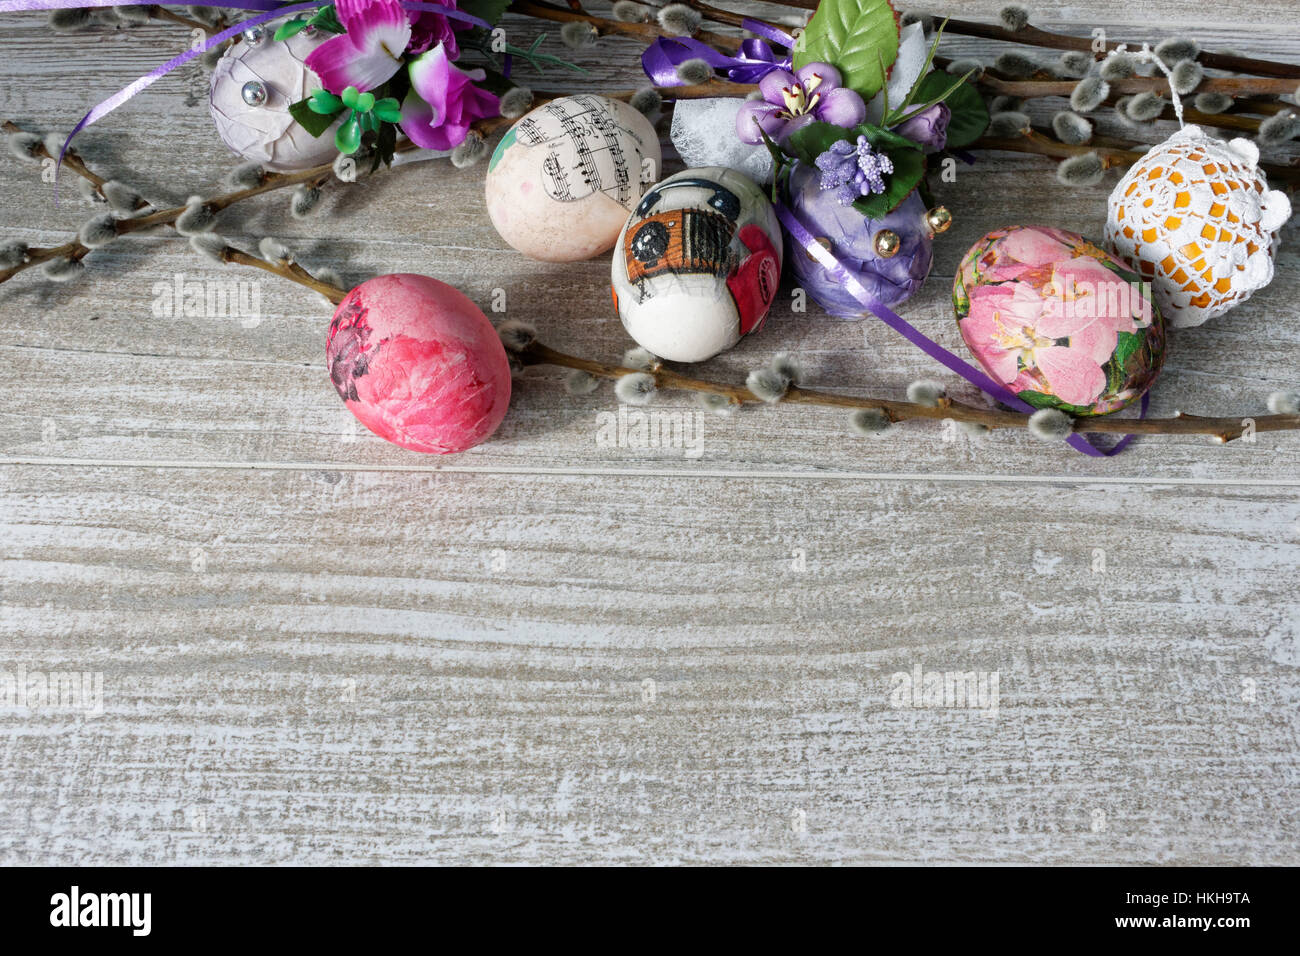 Decoupage decorated colorful Easter eggs with willow branches on wooden table Stock Photo